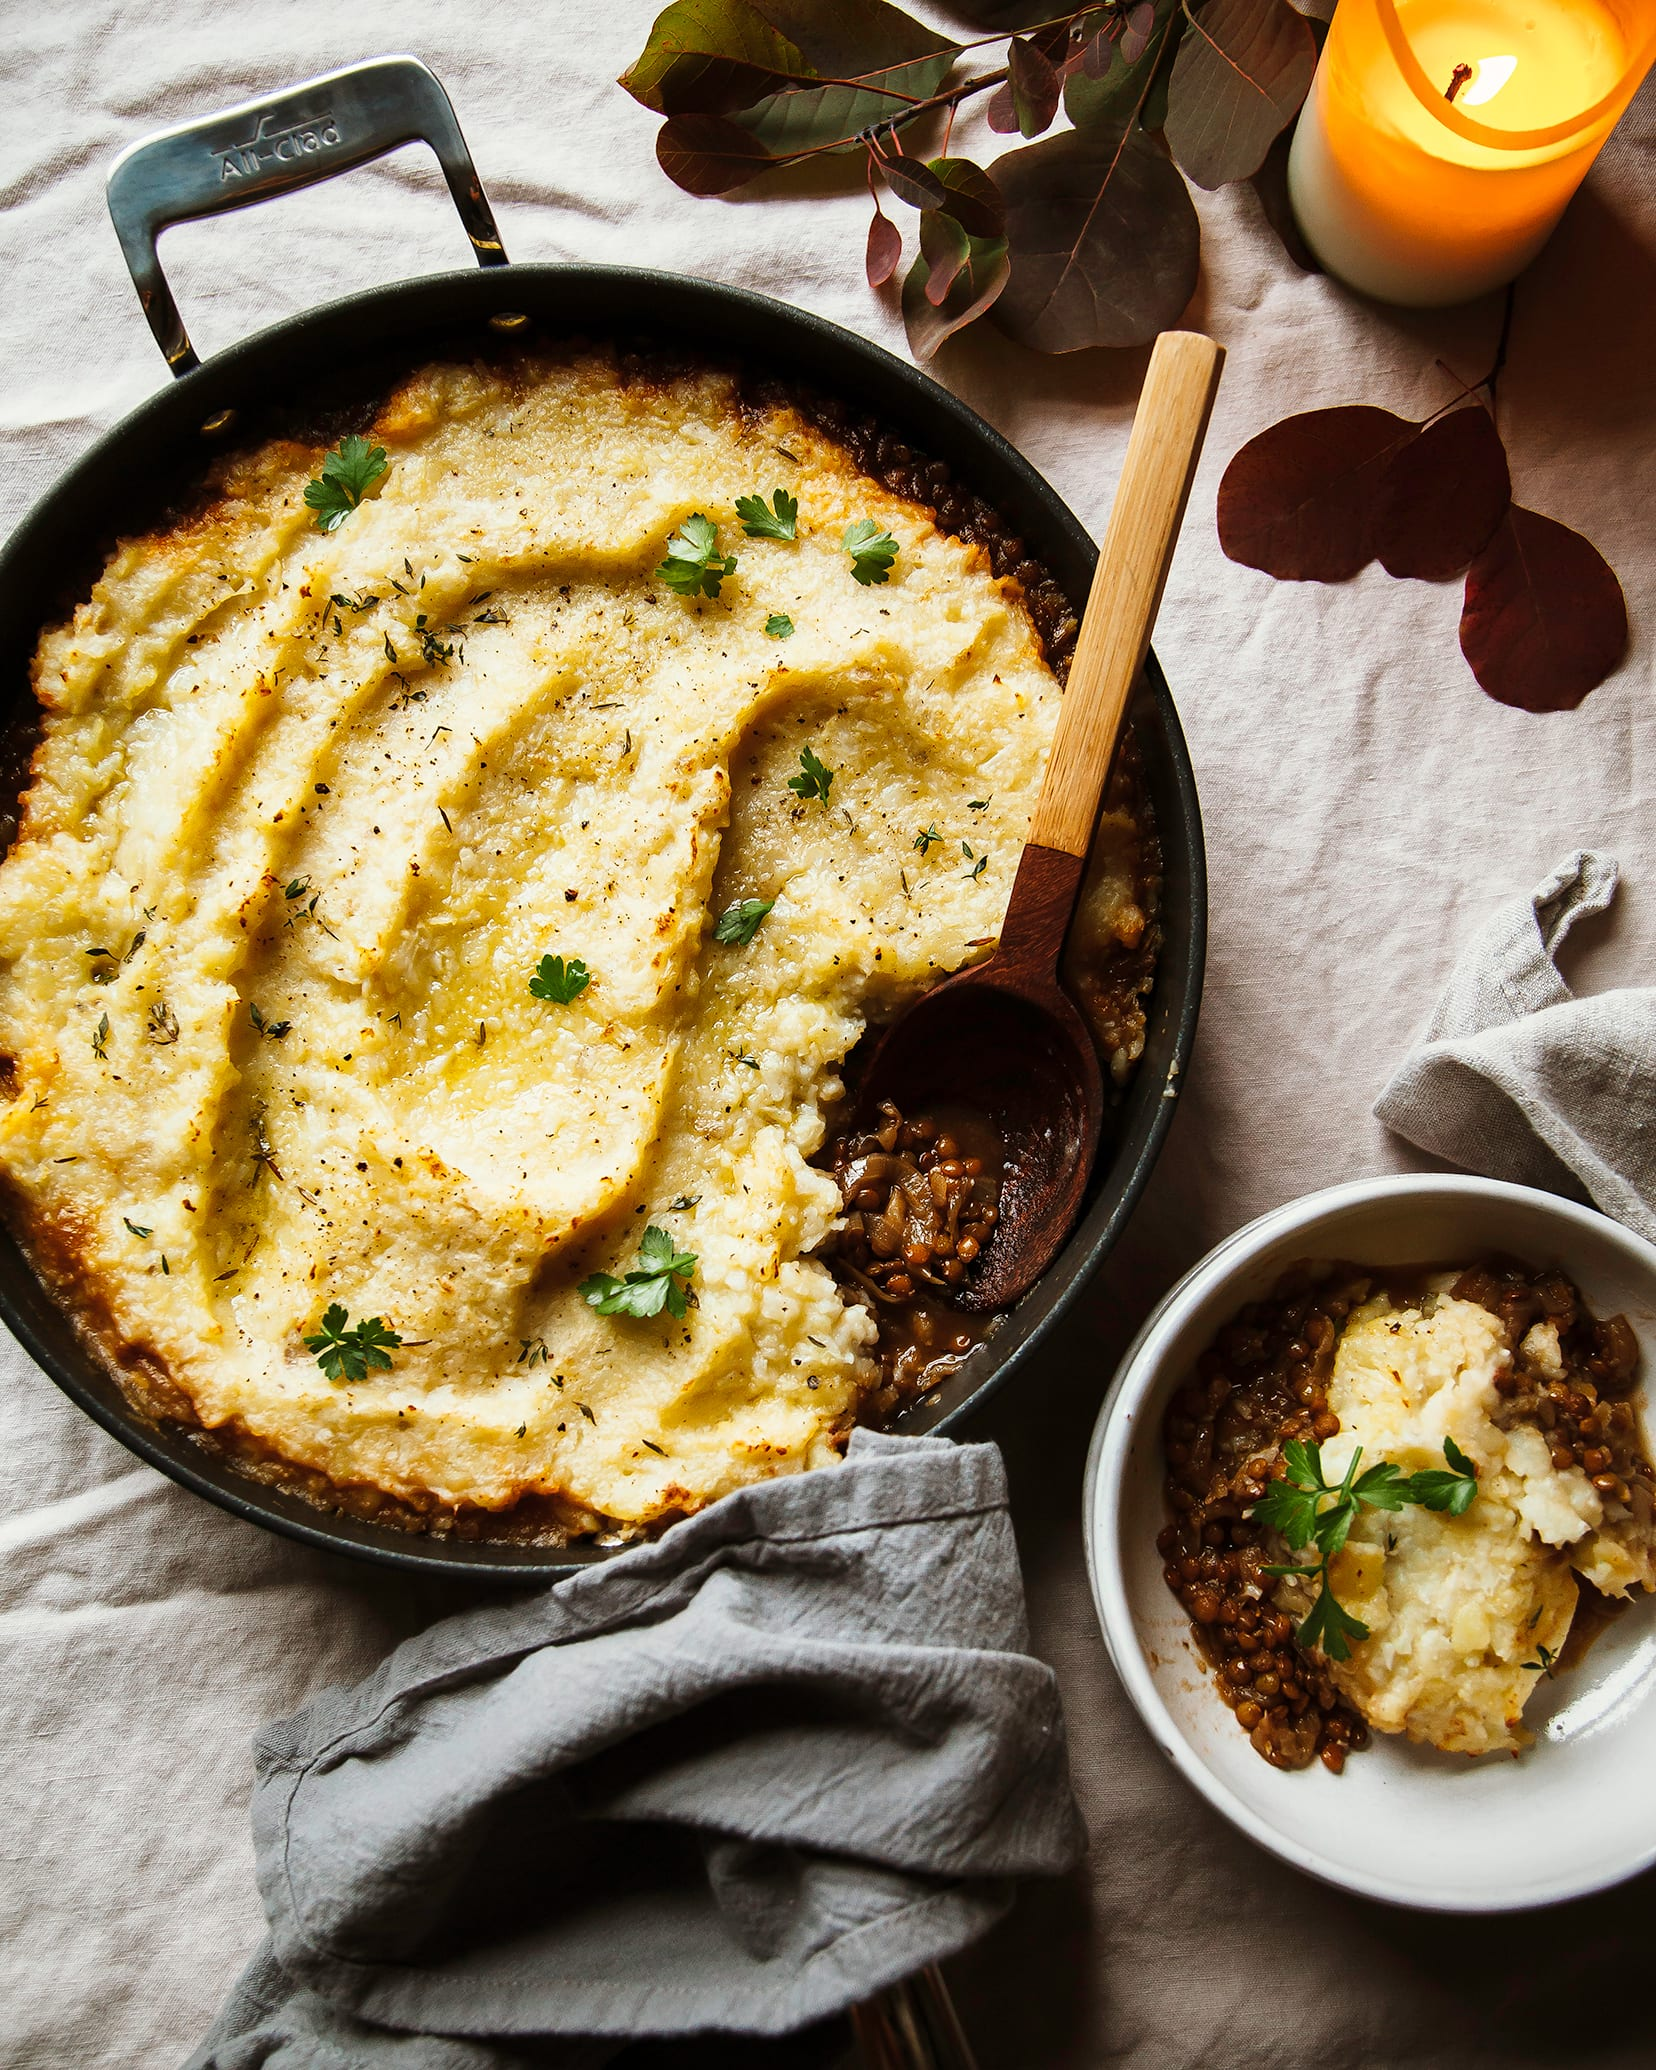 Overhead shot of a French onion shepherd's pie in a skillet.